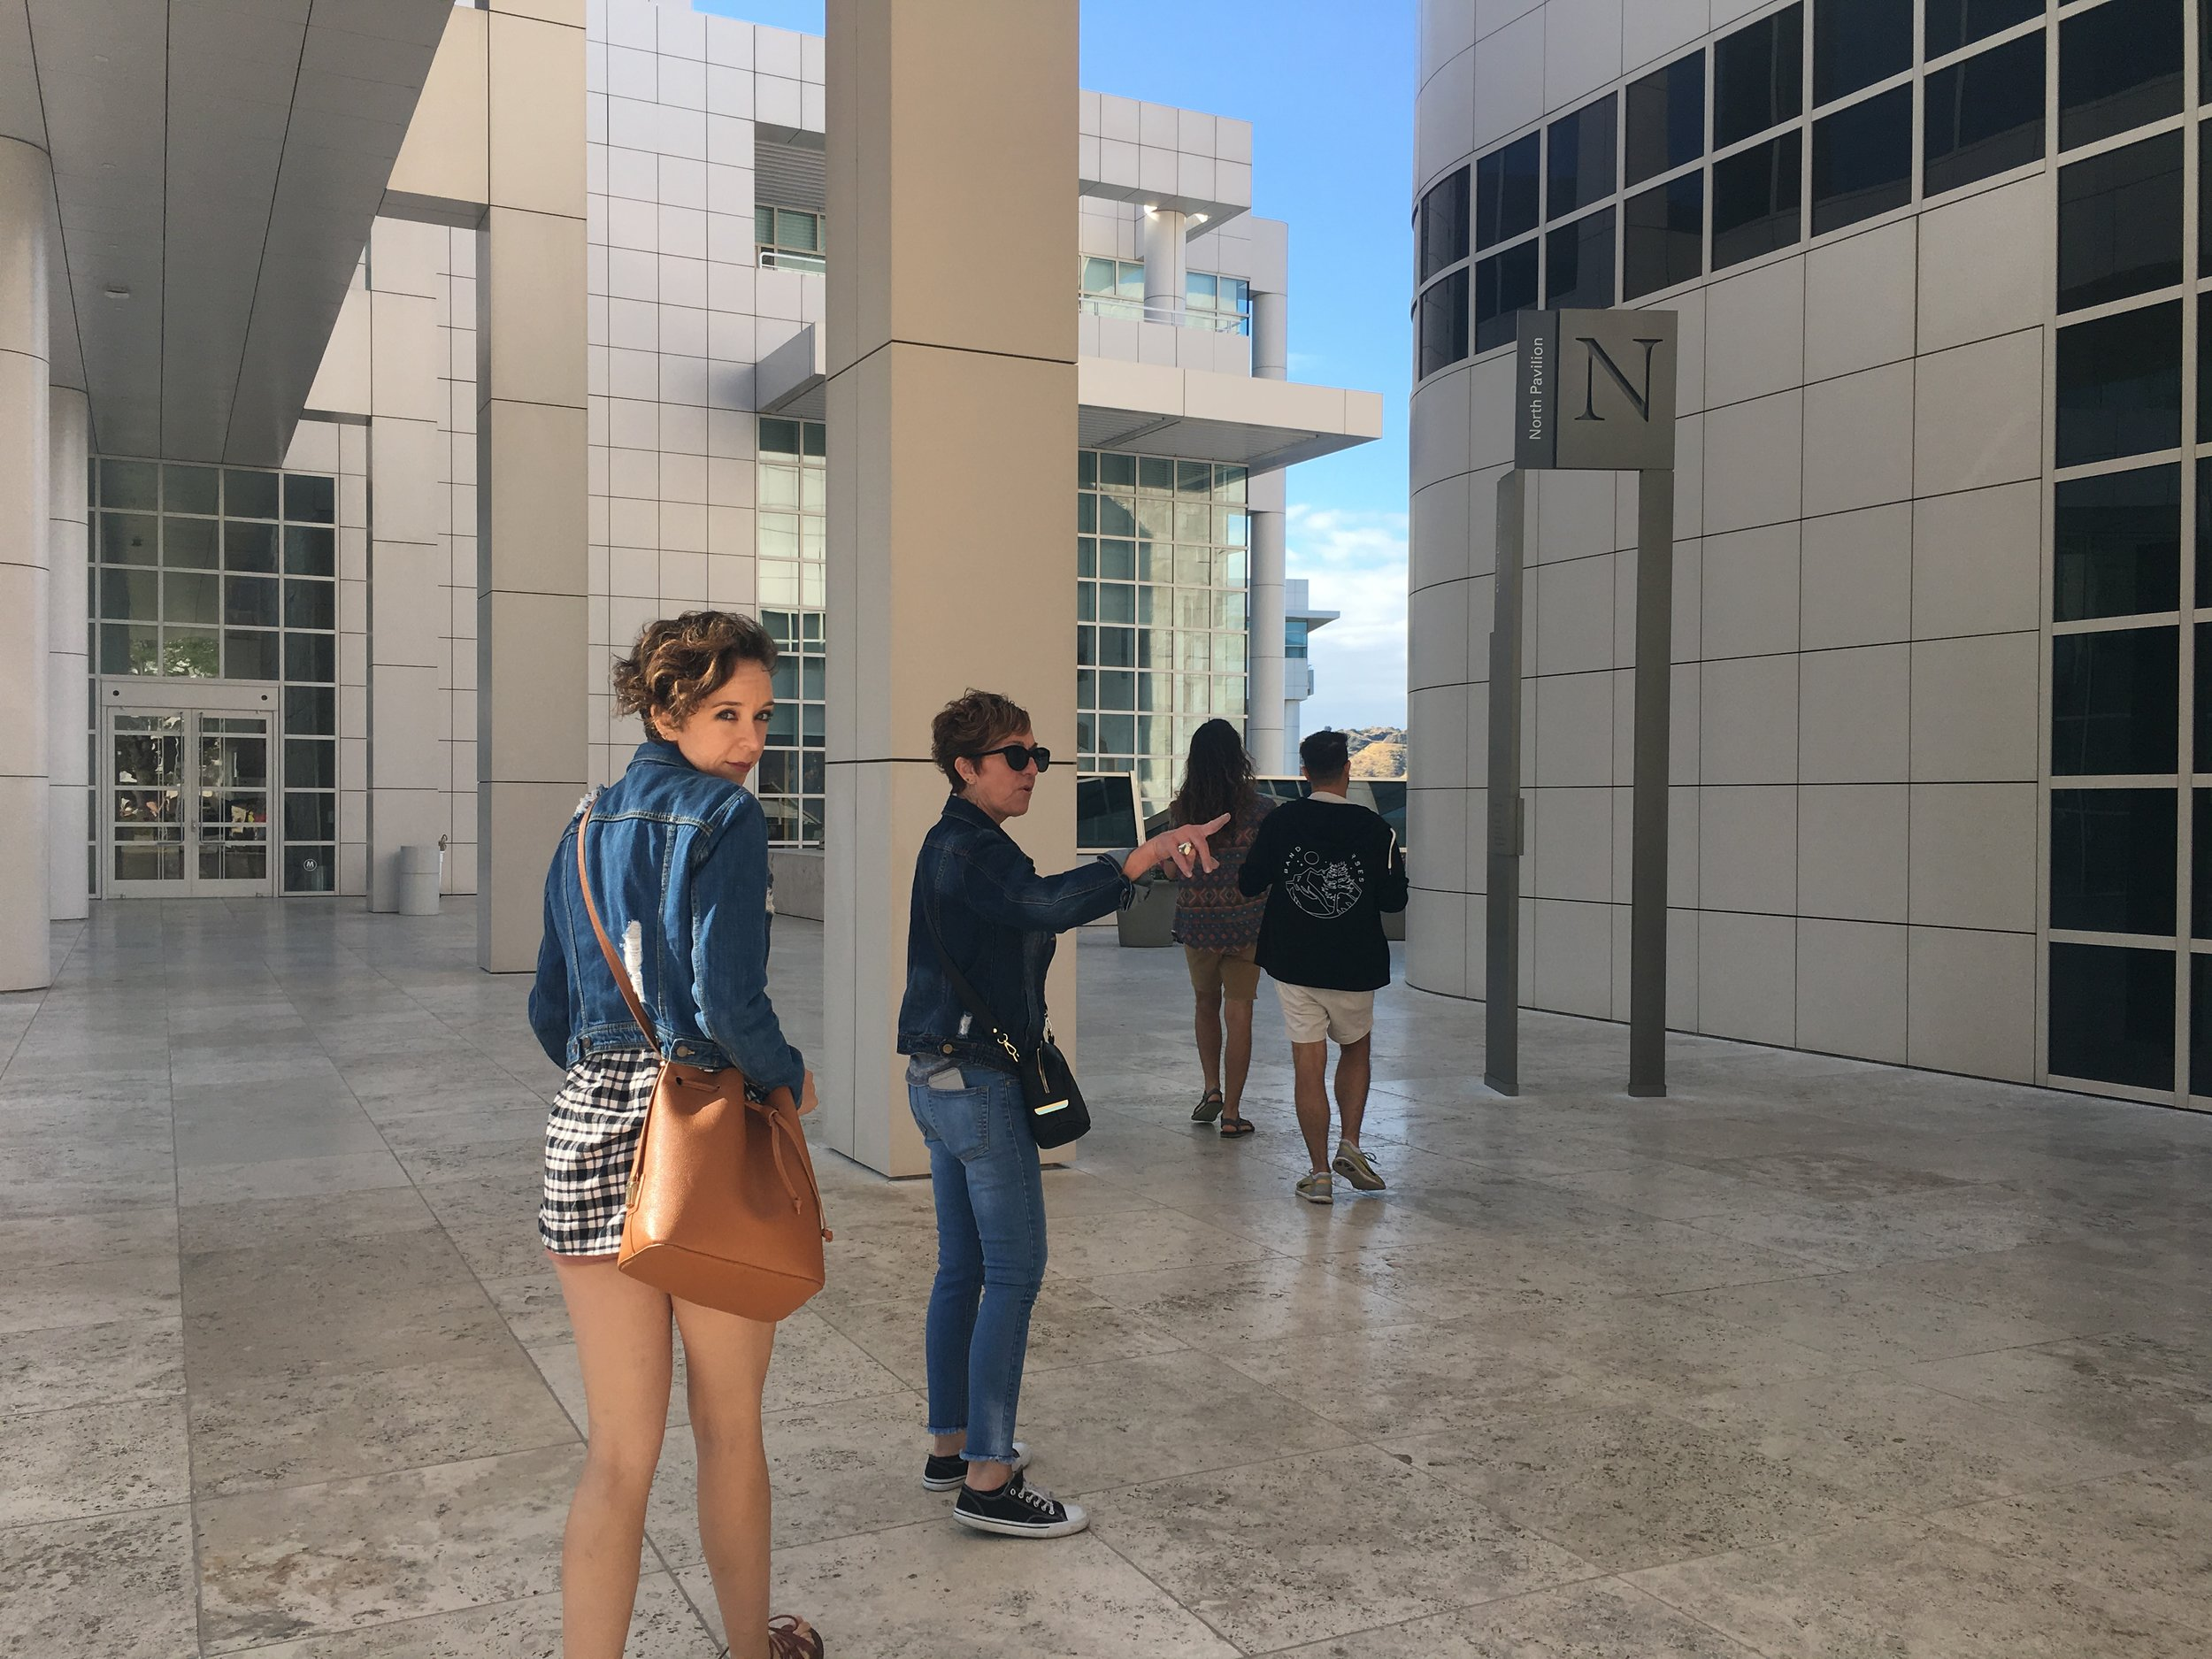 These four were the absolute best company while exploring this travertine covered building and throughout L.A.